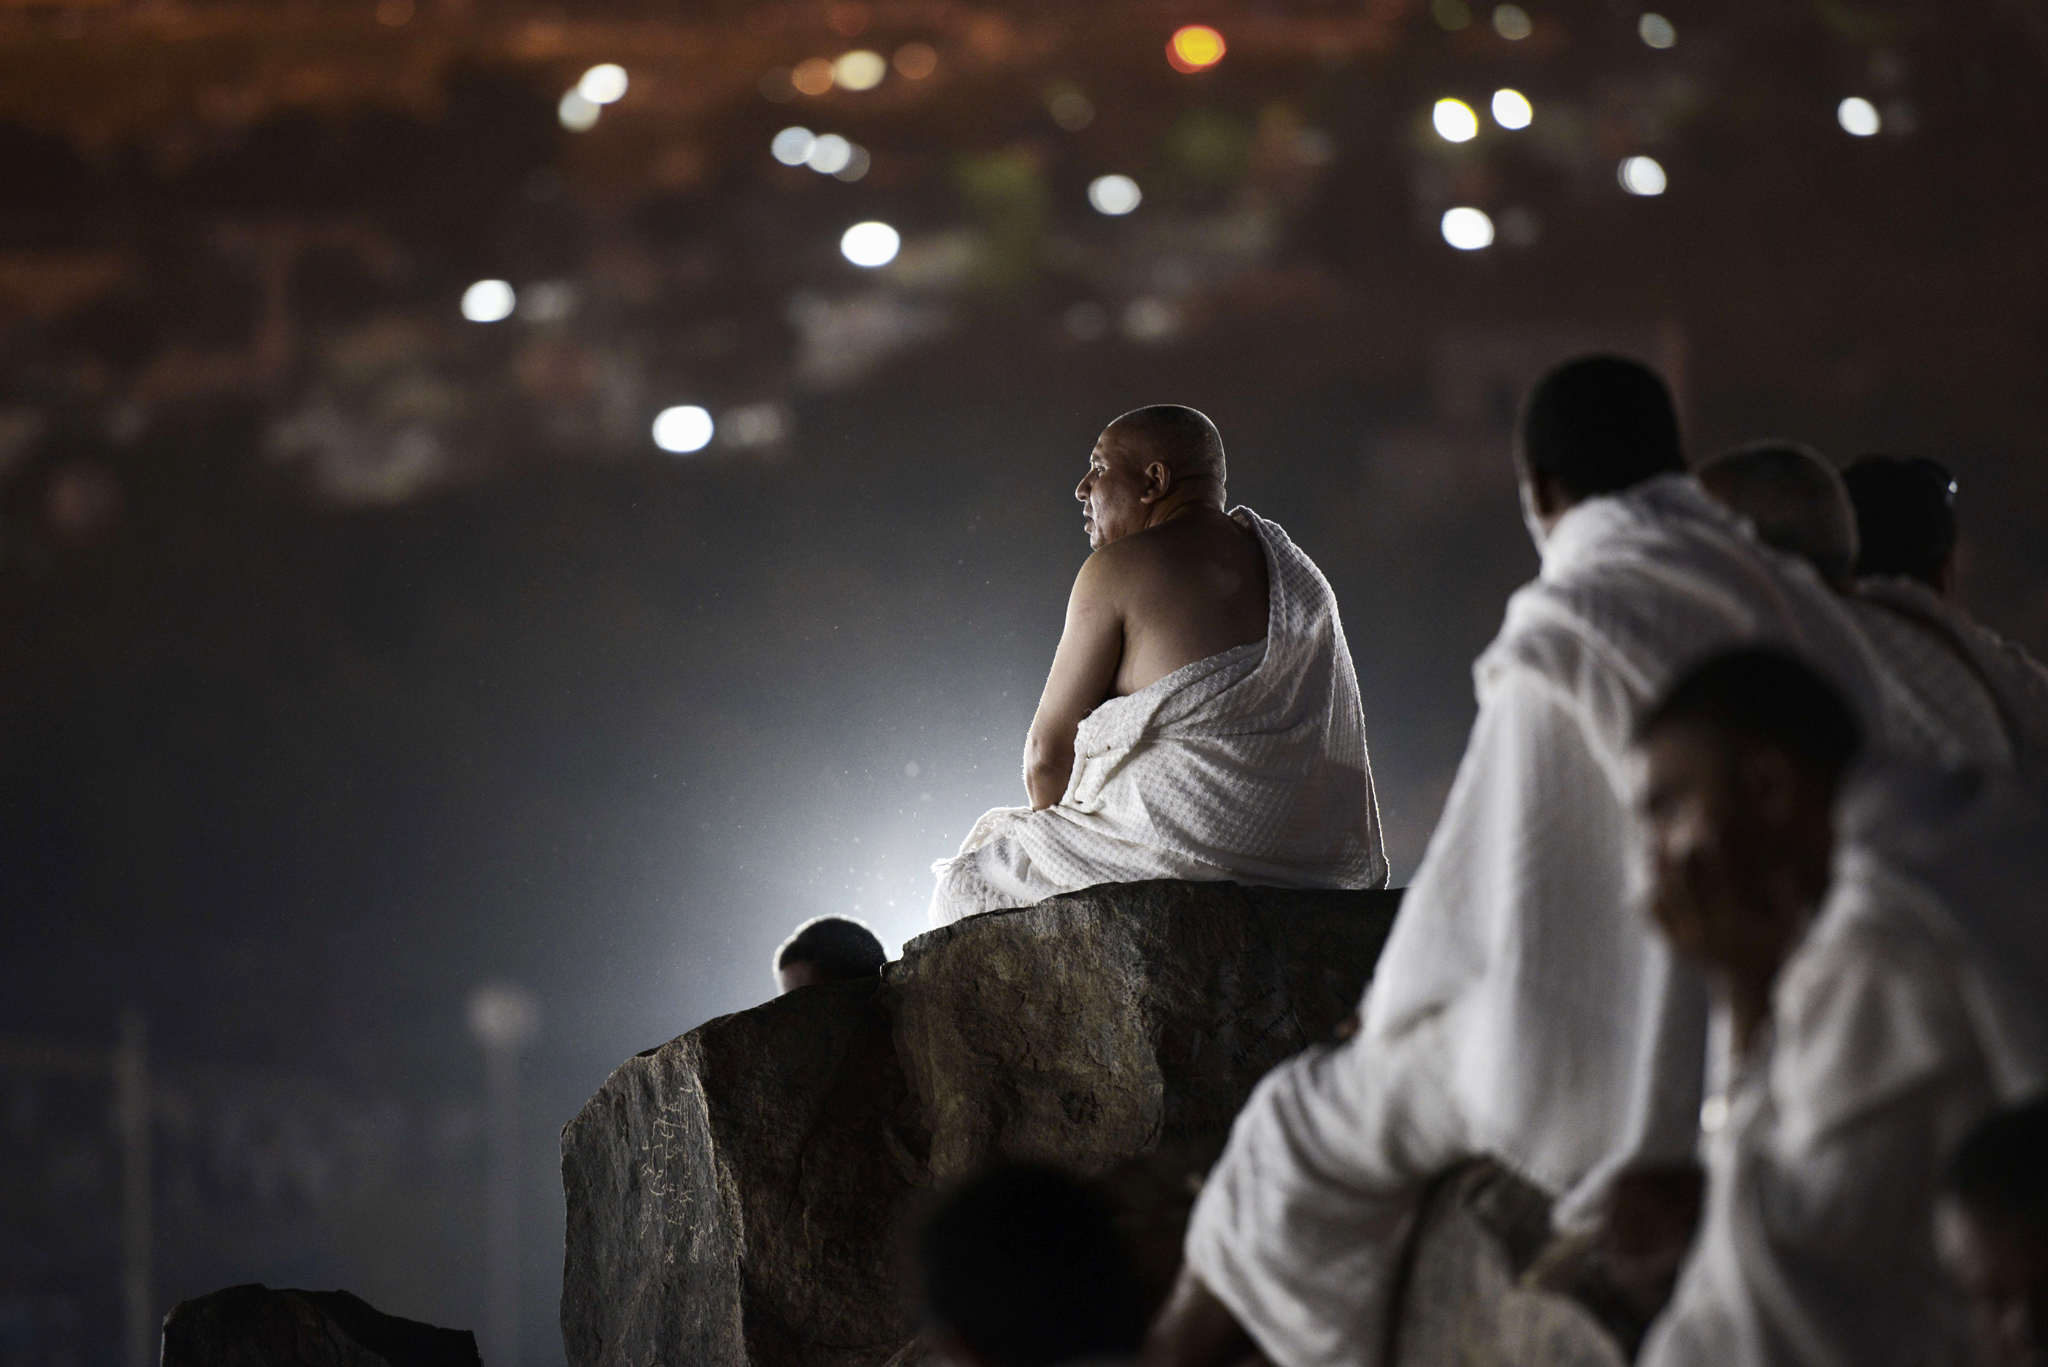 Muslim pilgrims gather on Mount Arafat near Mecca as they perform one of the Hajj rituals late on October 3, 2014. The pilgrims perform a series of rituals during the annual Hajj. They circumambulate the kaaba seven times, runs back and forth between the hills of Al-Safa and Al-Marwah, drink from the Zamzam Well, goes to the plains of Mount Arafat to stand in vigil, and throws stones in a ritual Stoning of Devil. The pilgrims then shave their heads, perform a ritual of animal sacrifice, and celebrate Eid al-Adha holiday. AFP PHOTO/MOHAMMED AL-SHAIKHMOHAMMED AL-SHAIKH/AFP/Getty Images